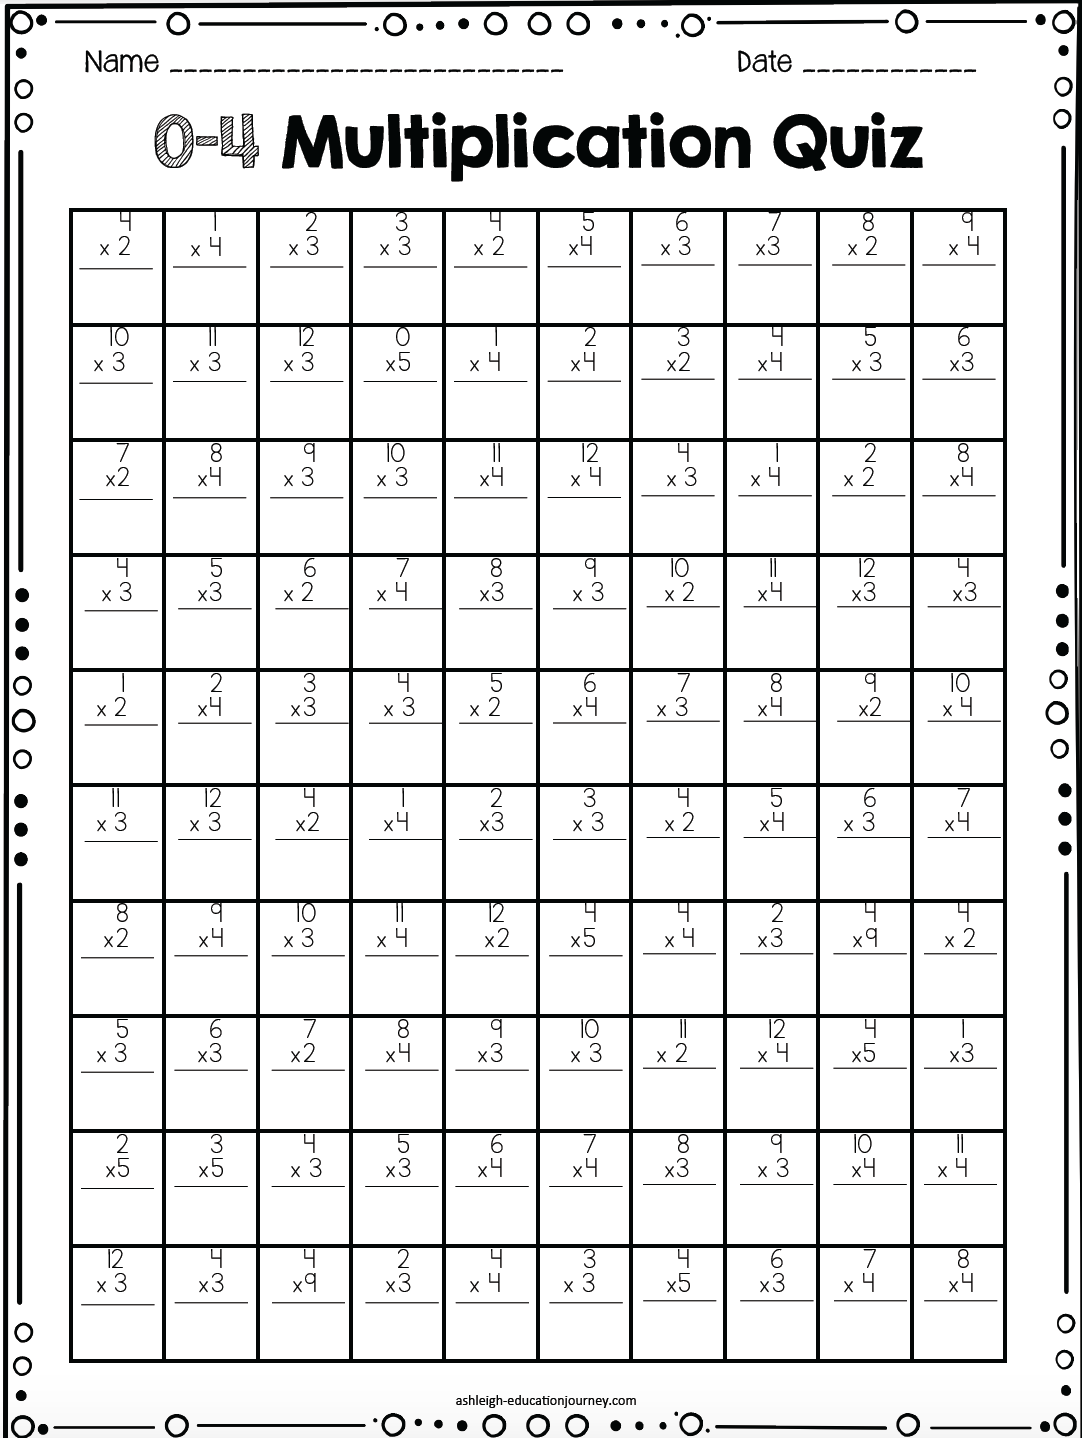 Worksheets Commutative Property Of Addition Worksheets 3rd Grade free multiplication timed test 100 question and 20 tests applies the commutative property